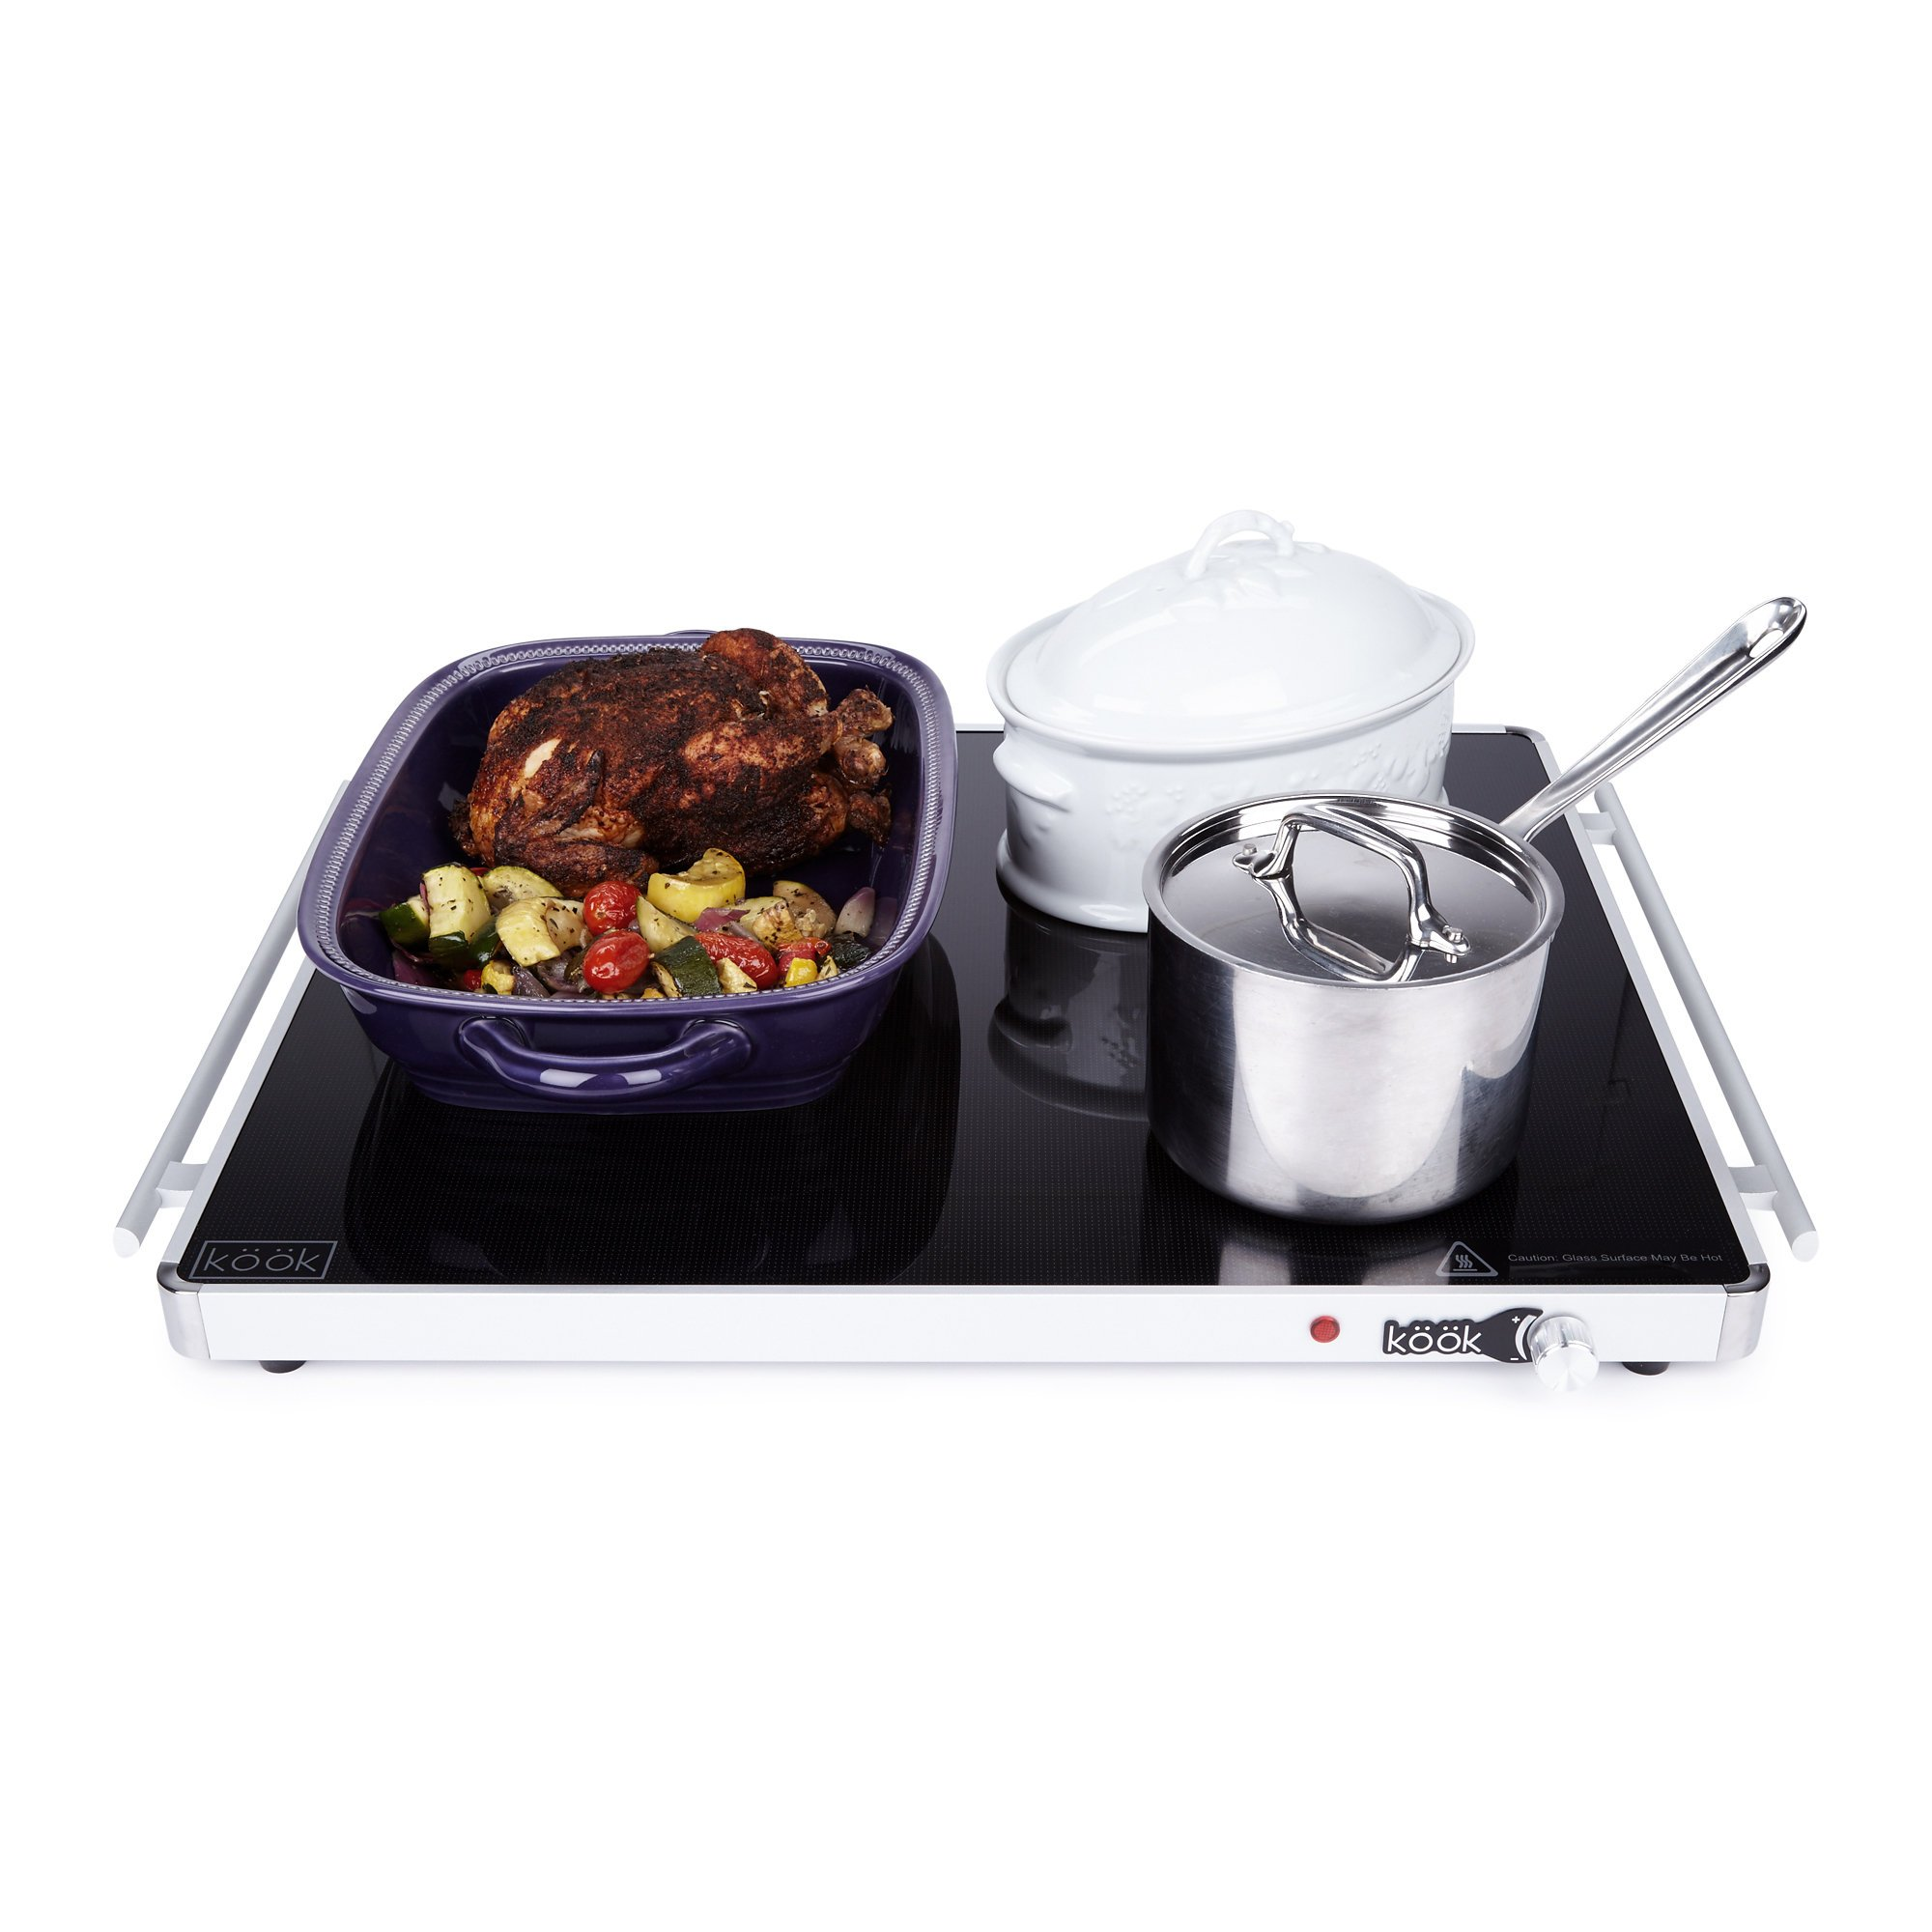 KooK Buffet Warming Tray, Food Warmer Hot Plate – Glass Top, Extra Large 24'' x 20'' 300-Watt – With Adjustable Temperature Control Knob by KooK (Image #6)